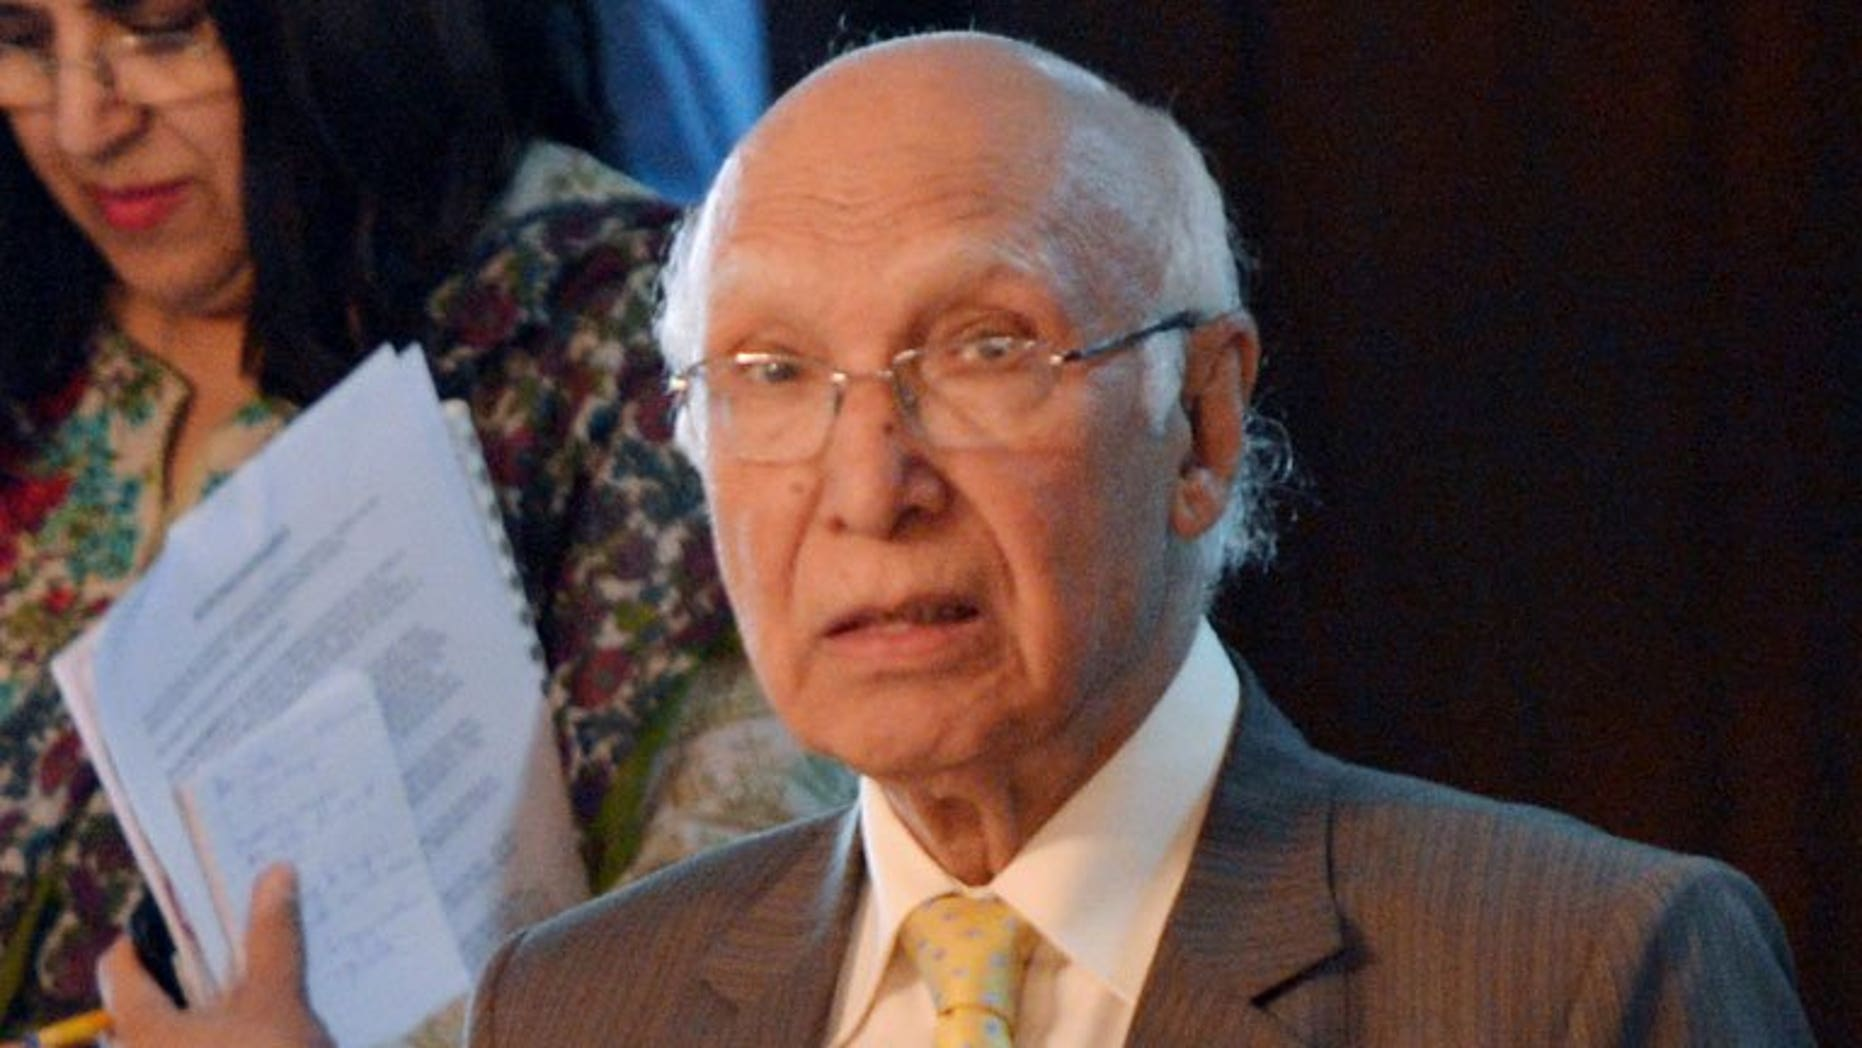 Pakistan's Adviser for National Security and Foreign Affairs Sartaj Aziz arrives at the Foreign Ministry in Islamabad on July 17, 2013.